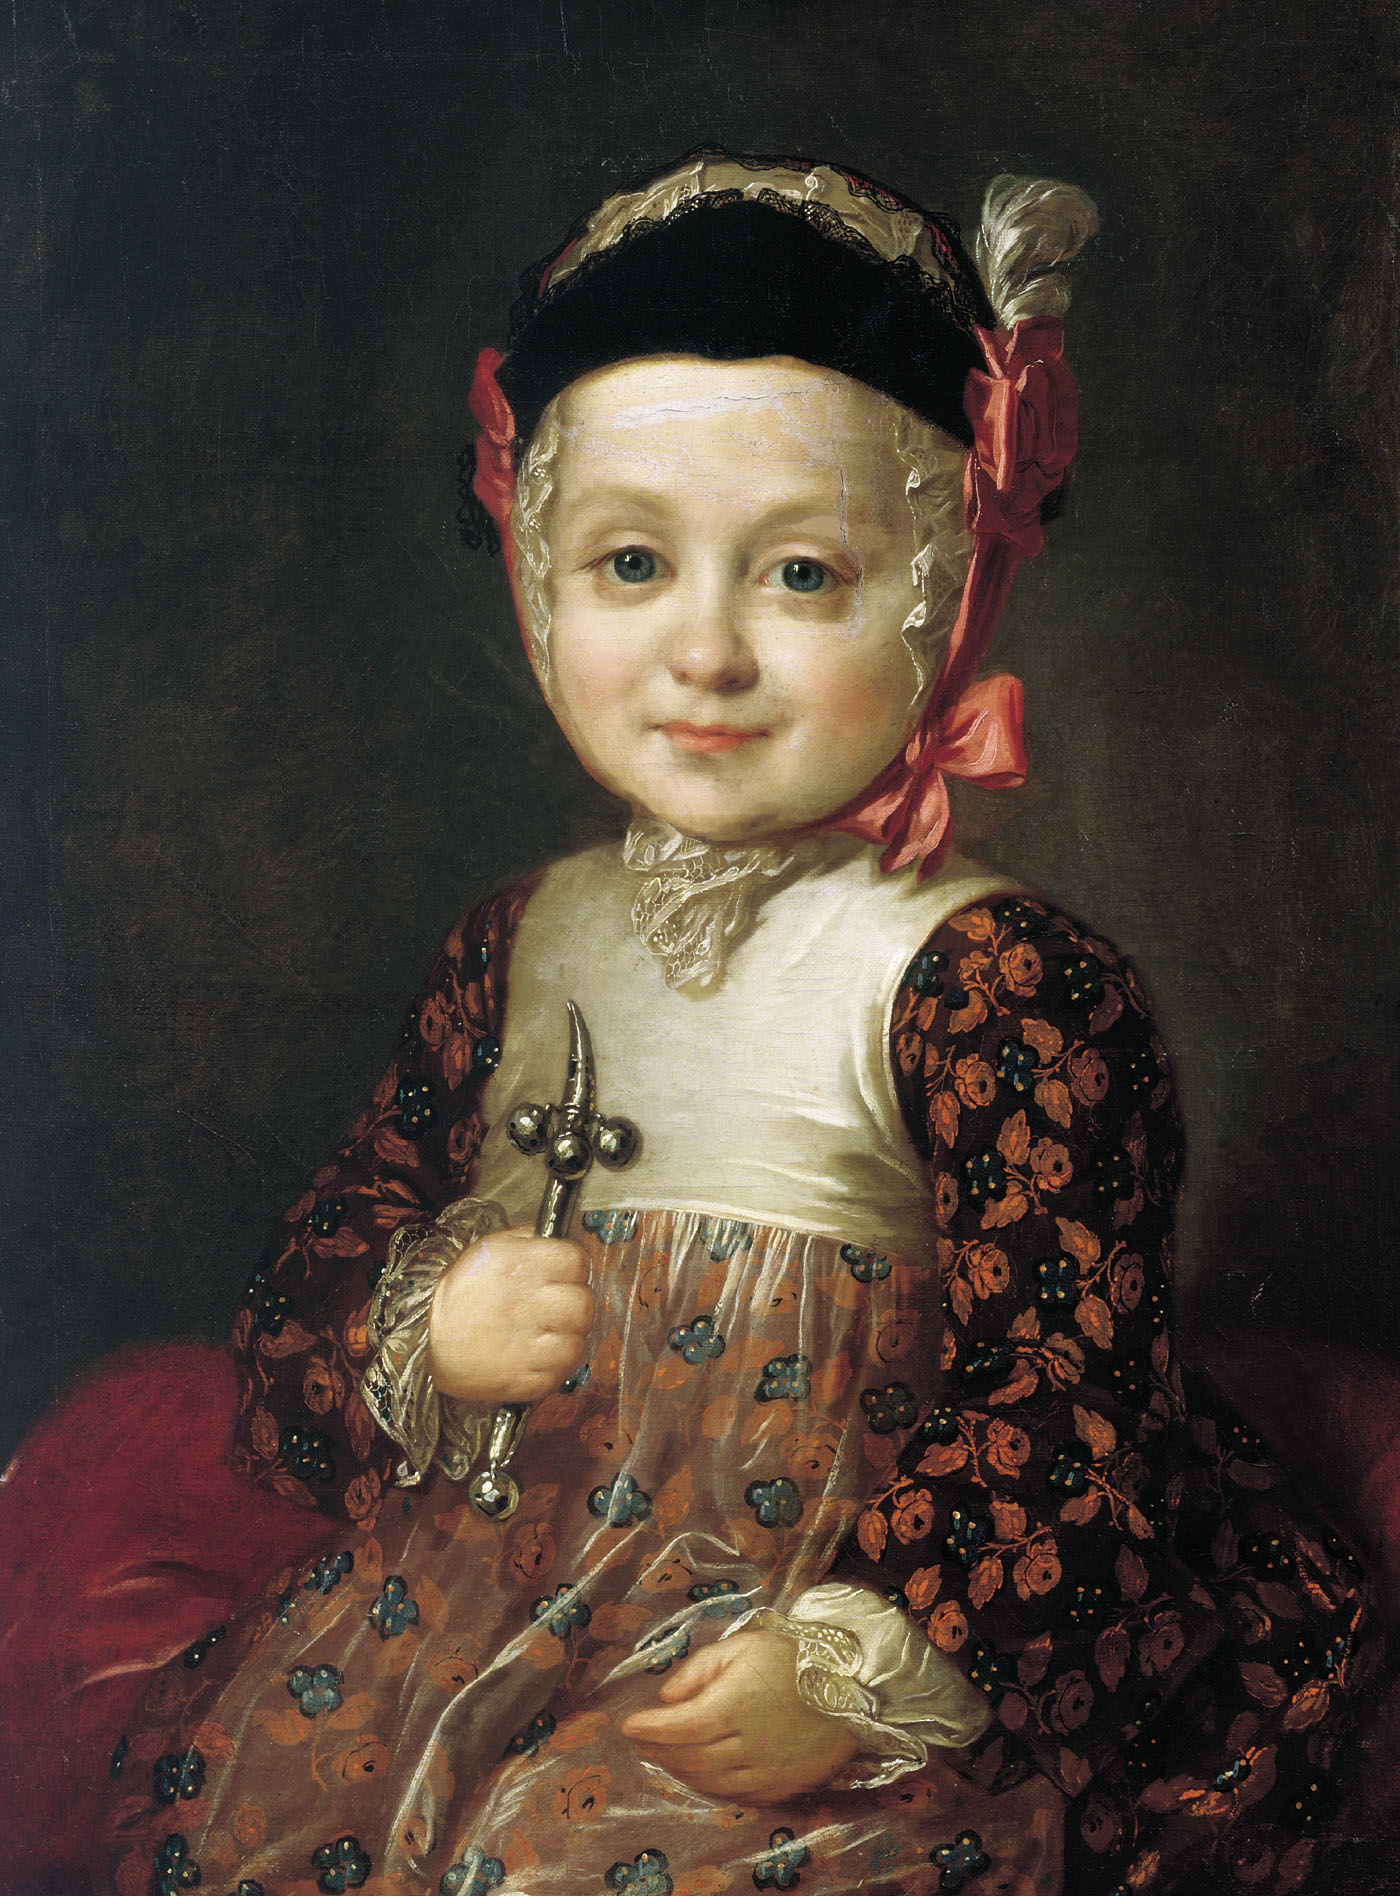 Portrait of Count Alexey Bobrinsky as a Child, 1760